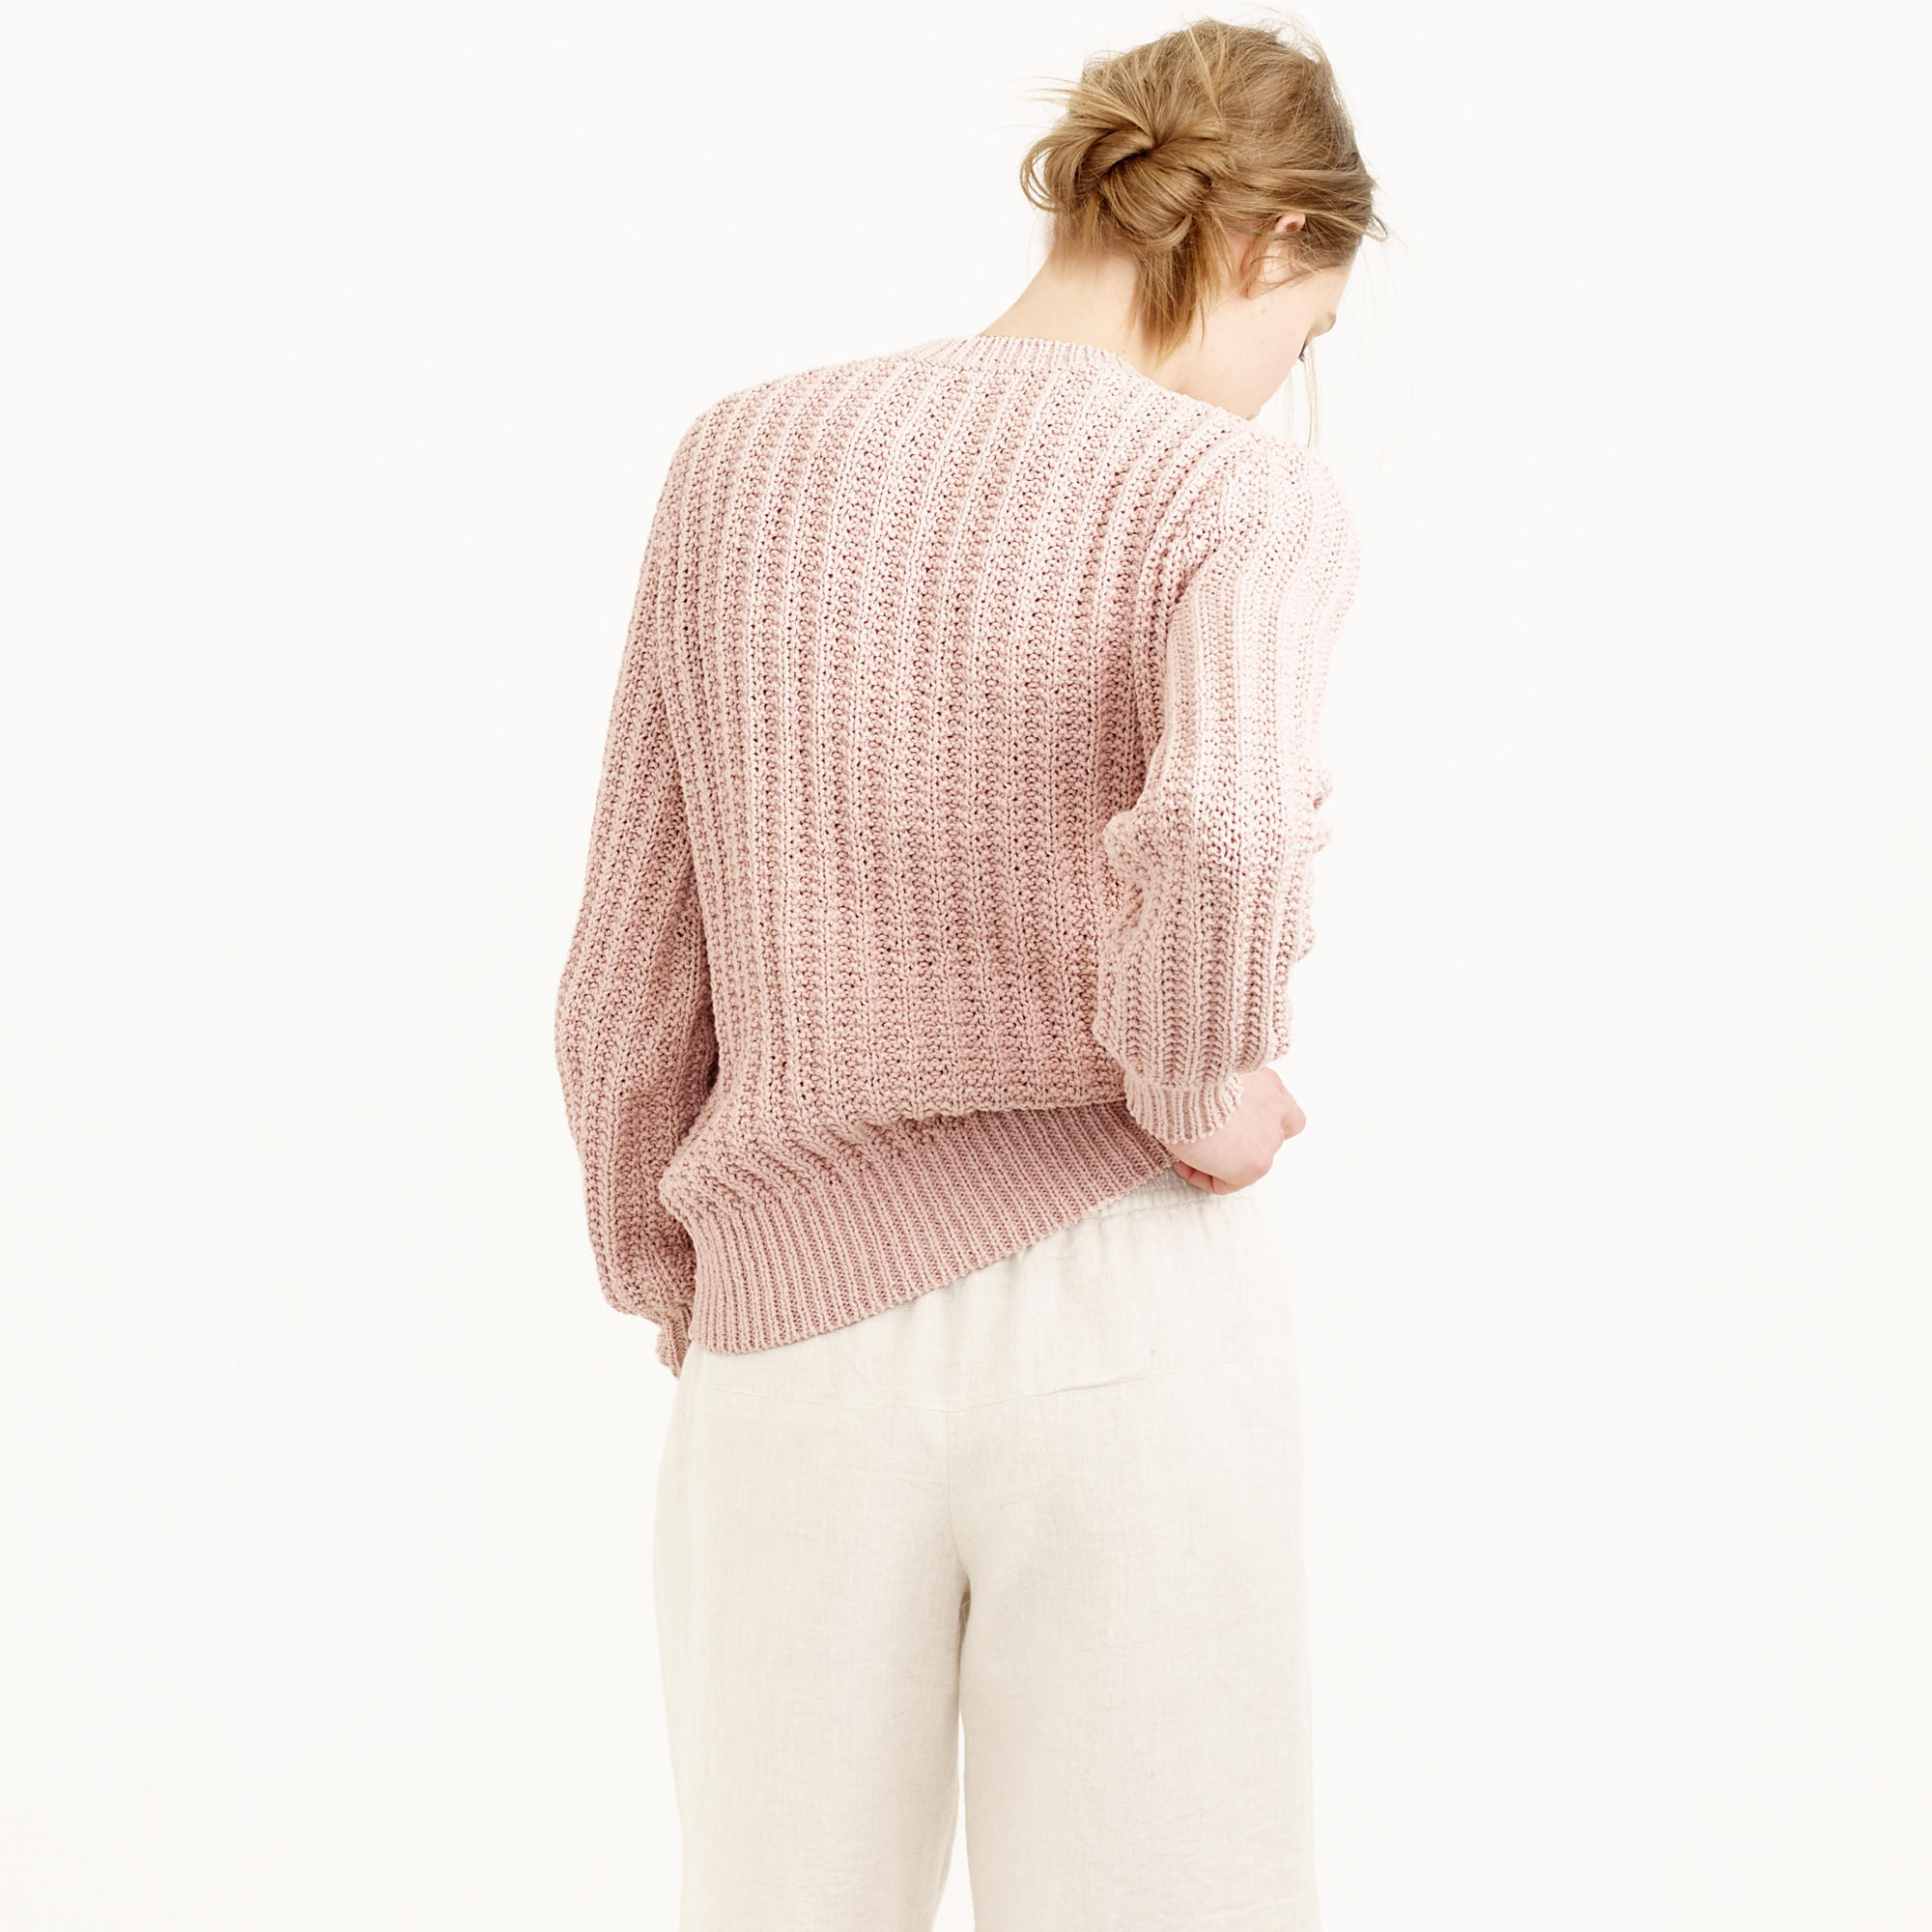 J.crew Ryan Roche Ribbed Sweater in Pink | Lyst